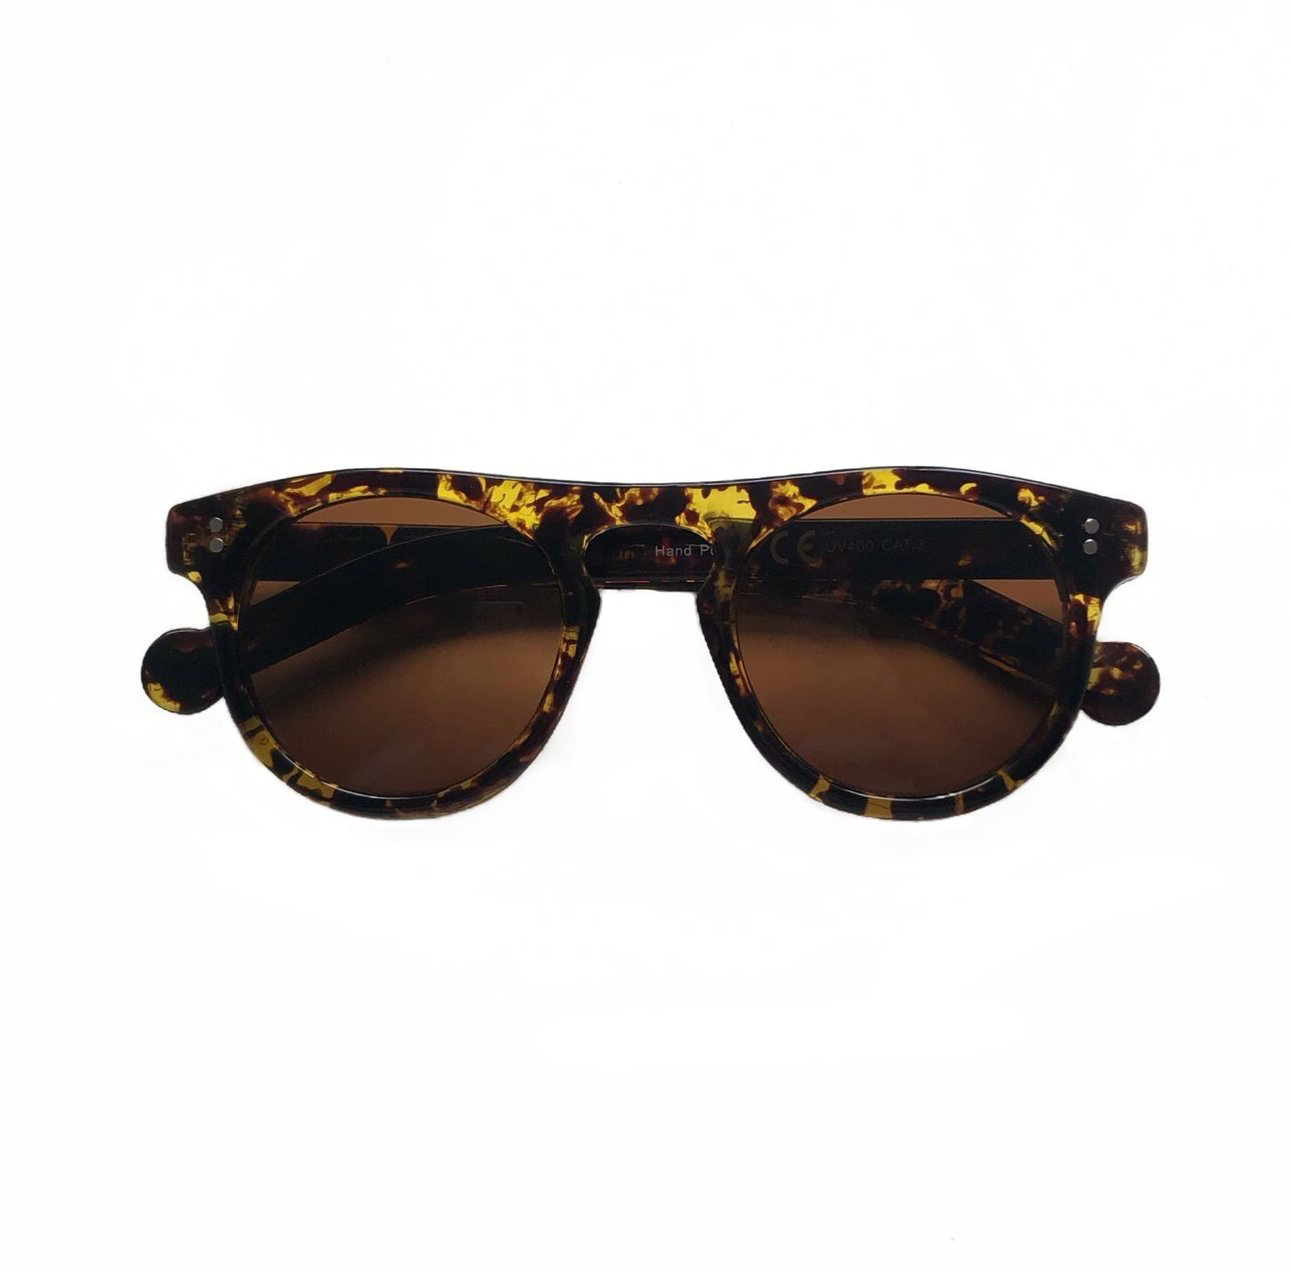 Adrian Sunglasses - Brown